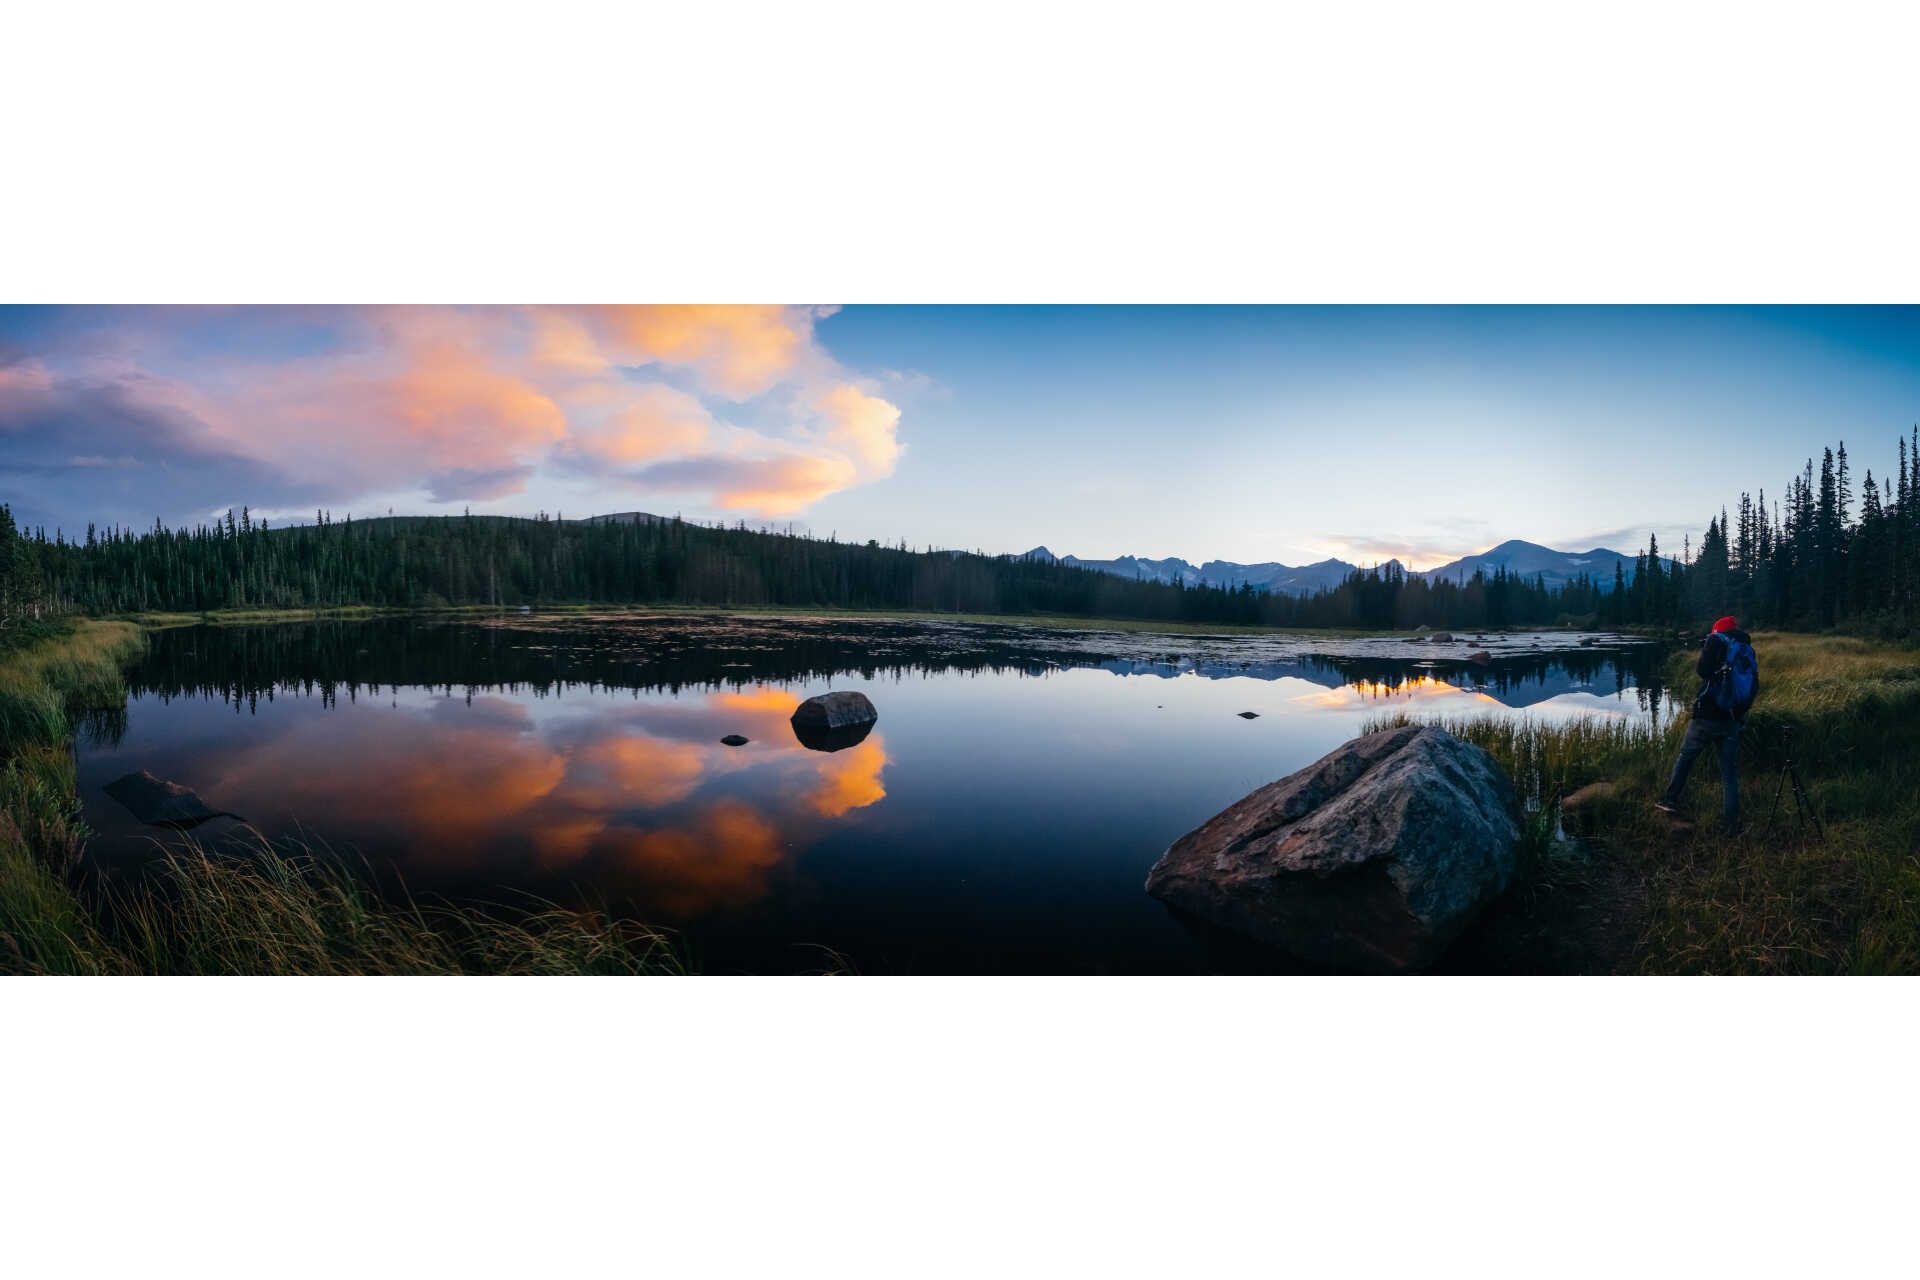 Sunset panorama at Bear Lake in Rocky Mountain National Park